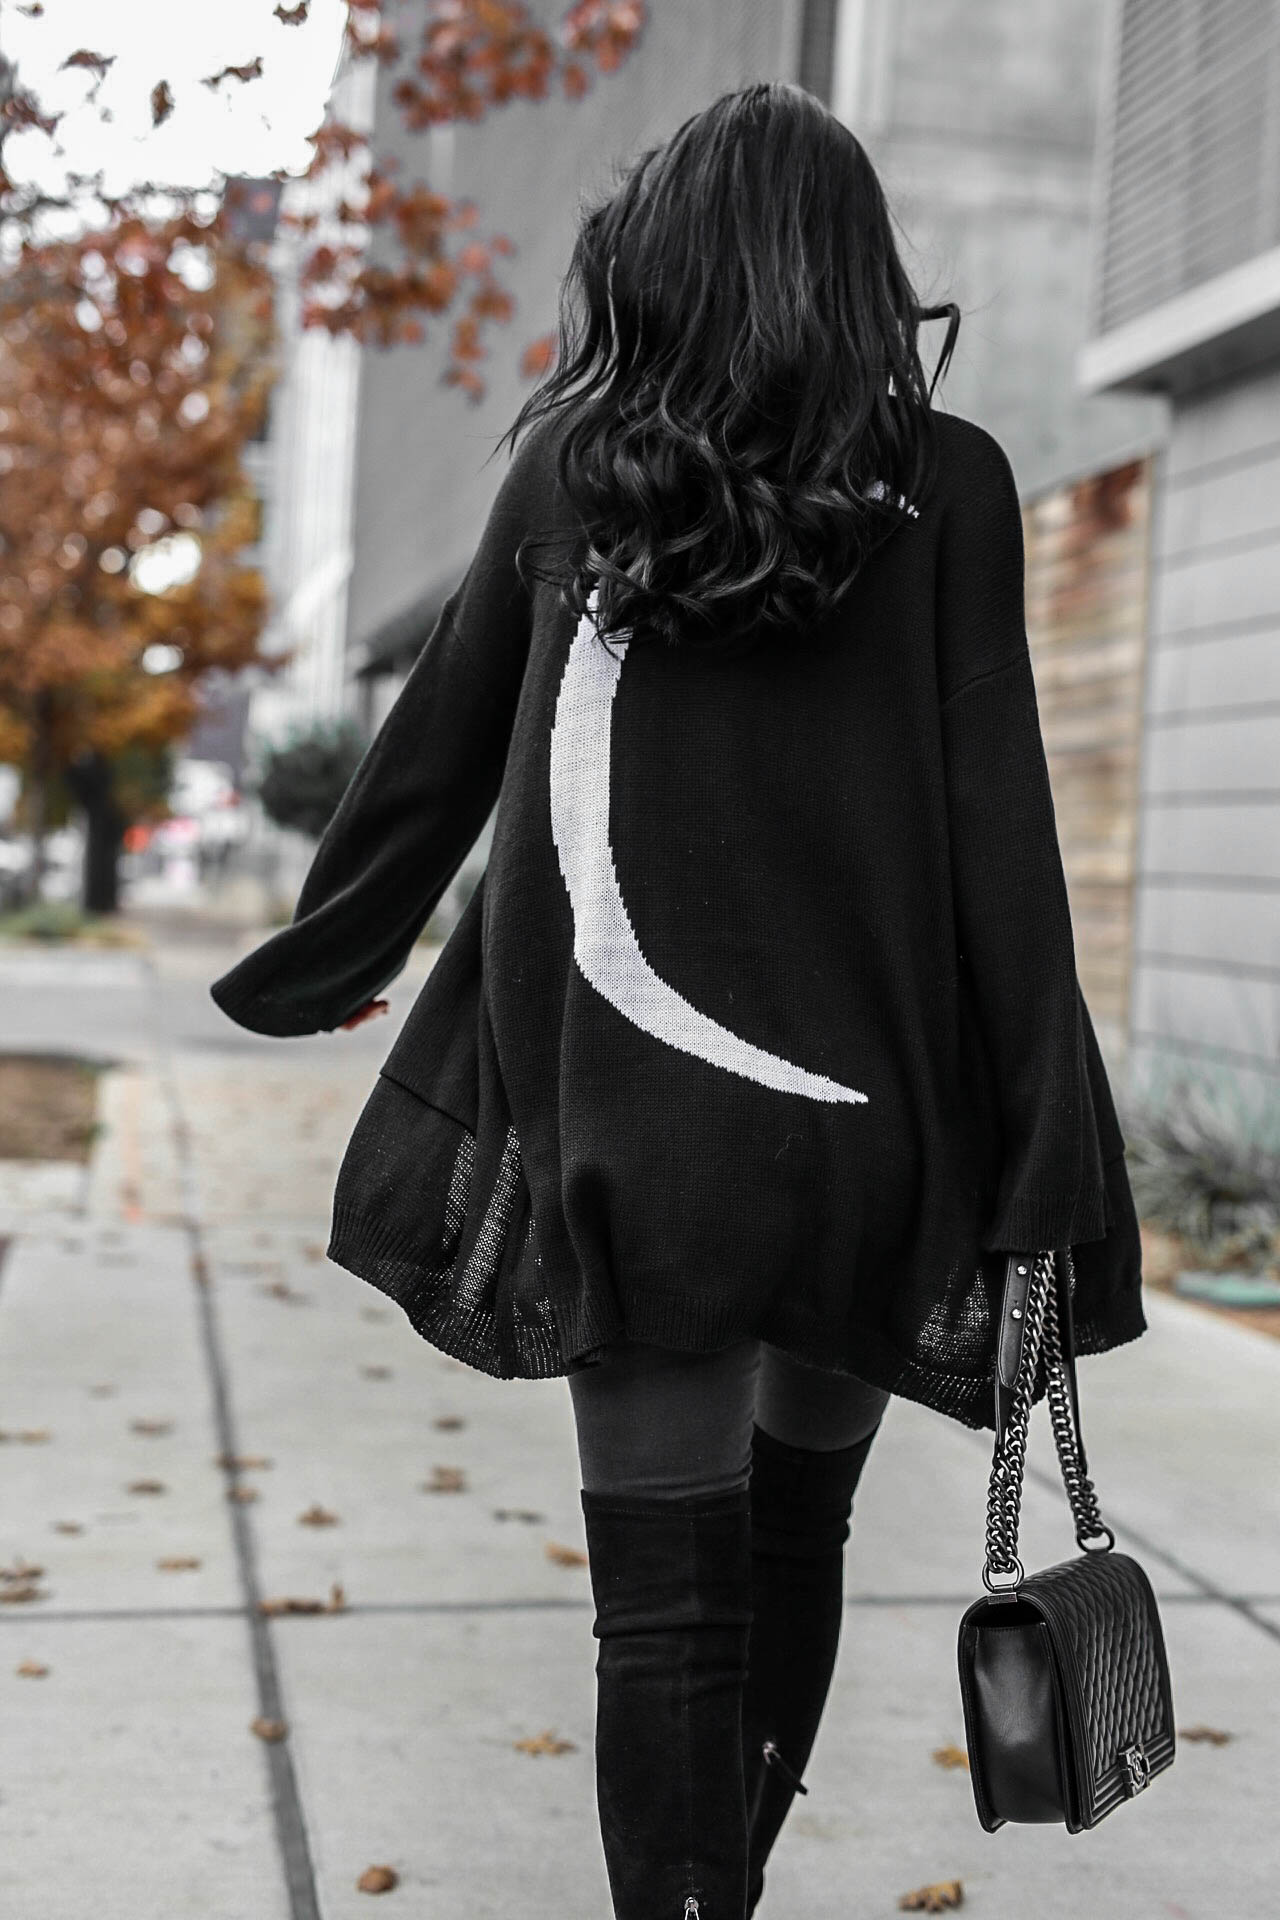 DTKAustin shares how to pull off an all black look as well as why she has an affinity for stars and moons. Cardigan from Show me Your Mumu.   black distressed jeans   Chanel handbag   OTK suede leather boots   all black fashion for women   all black outfit for winter   over the knee boots style    Dressed to Kill #otkboots #allblack #distressedjeans